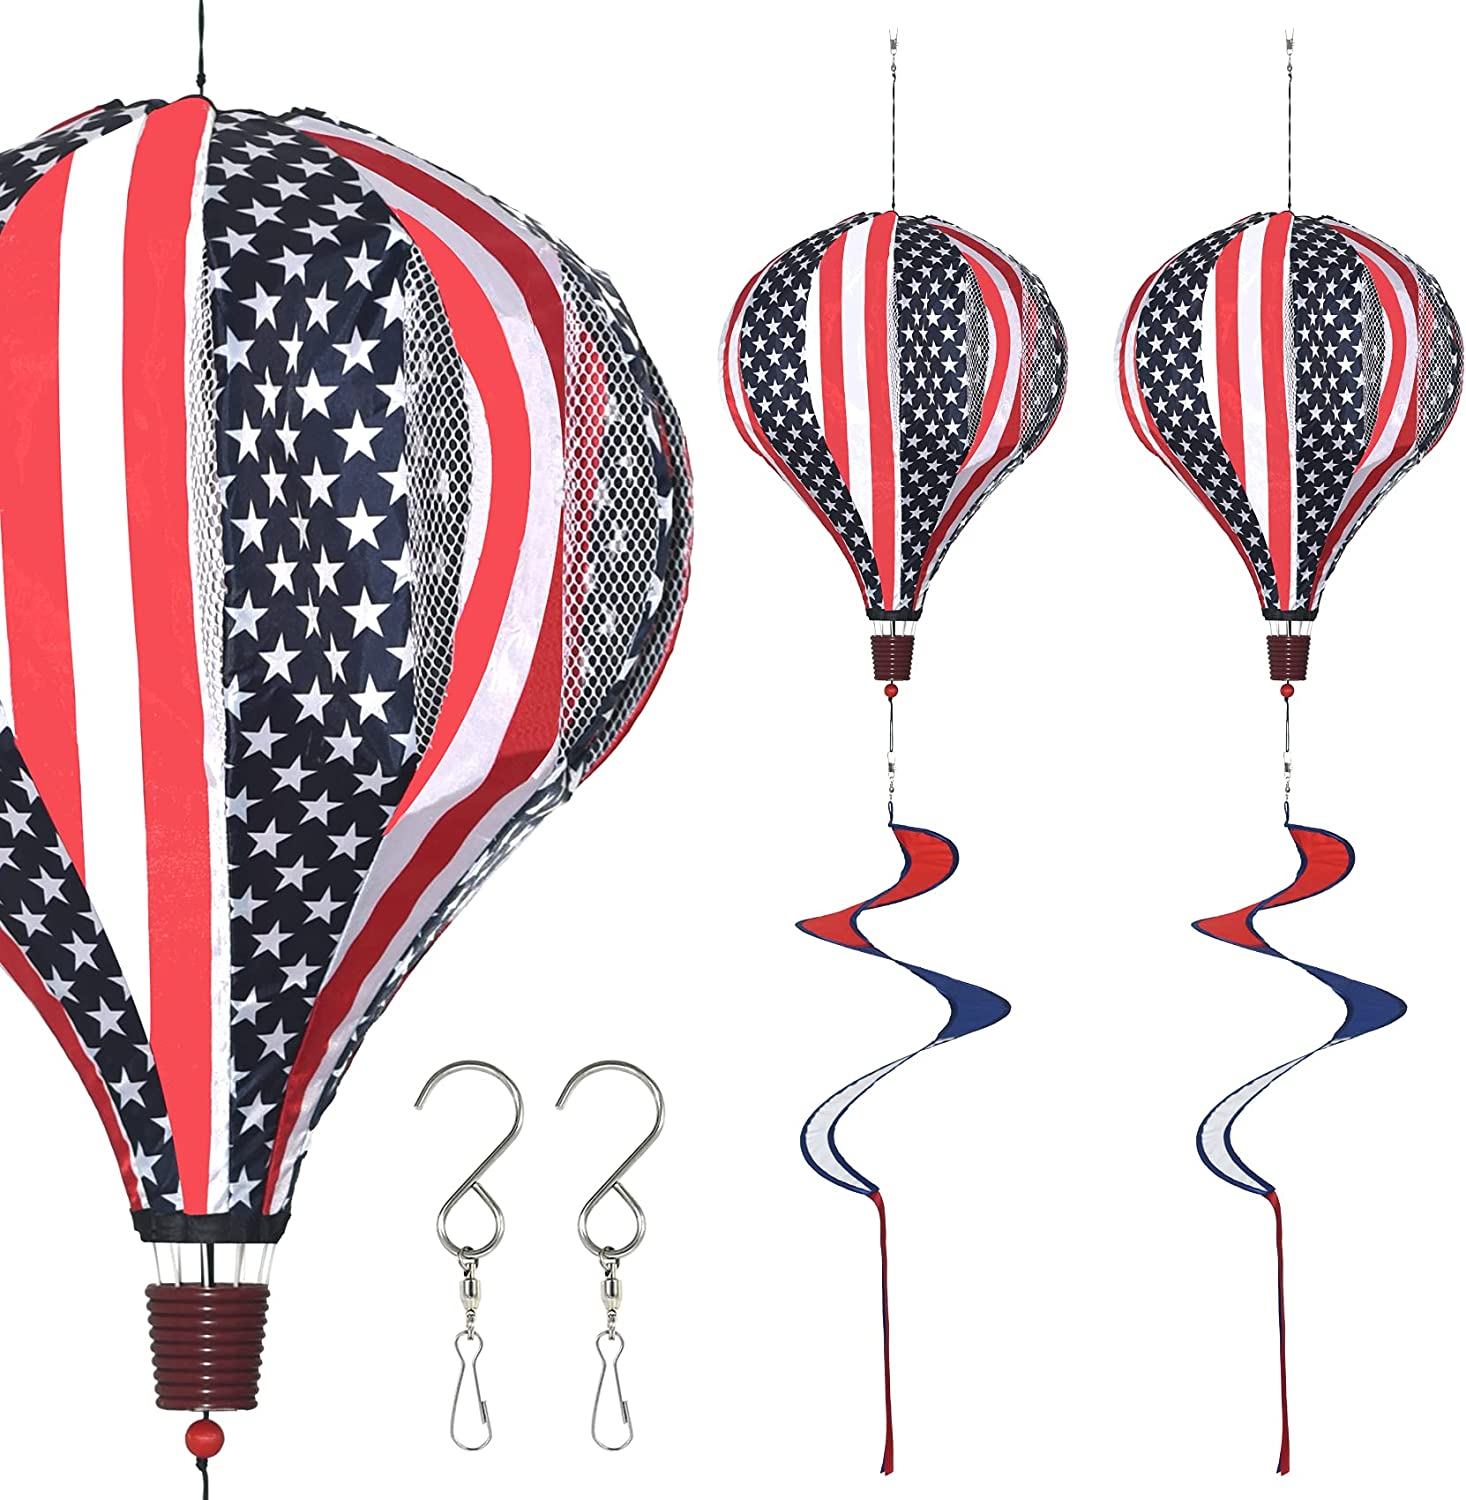 FENELY Giant Flag Hot Air Balloon Garden Wind Spinners Pinwheels Whirligigs Windmill Toys for Kids Yard Decor Lawn Decorations Outdoor Whirlygig Windmills Wind Twister Everyday 59